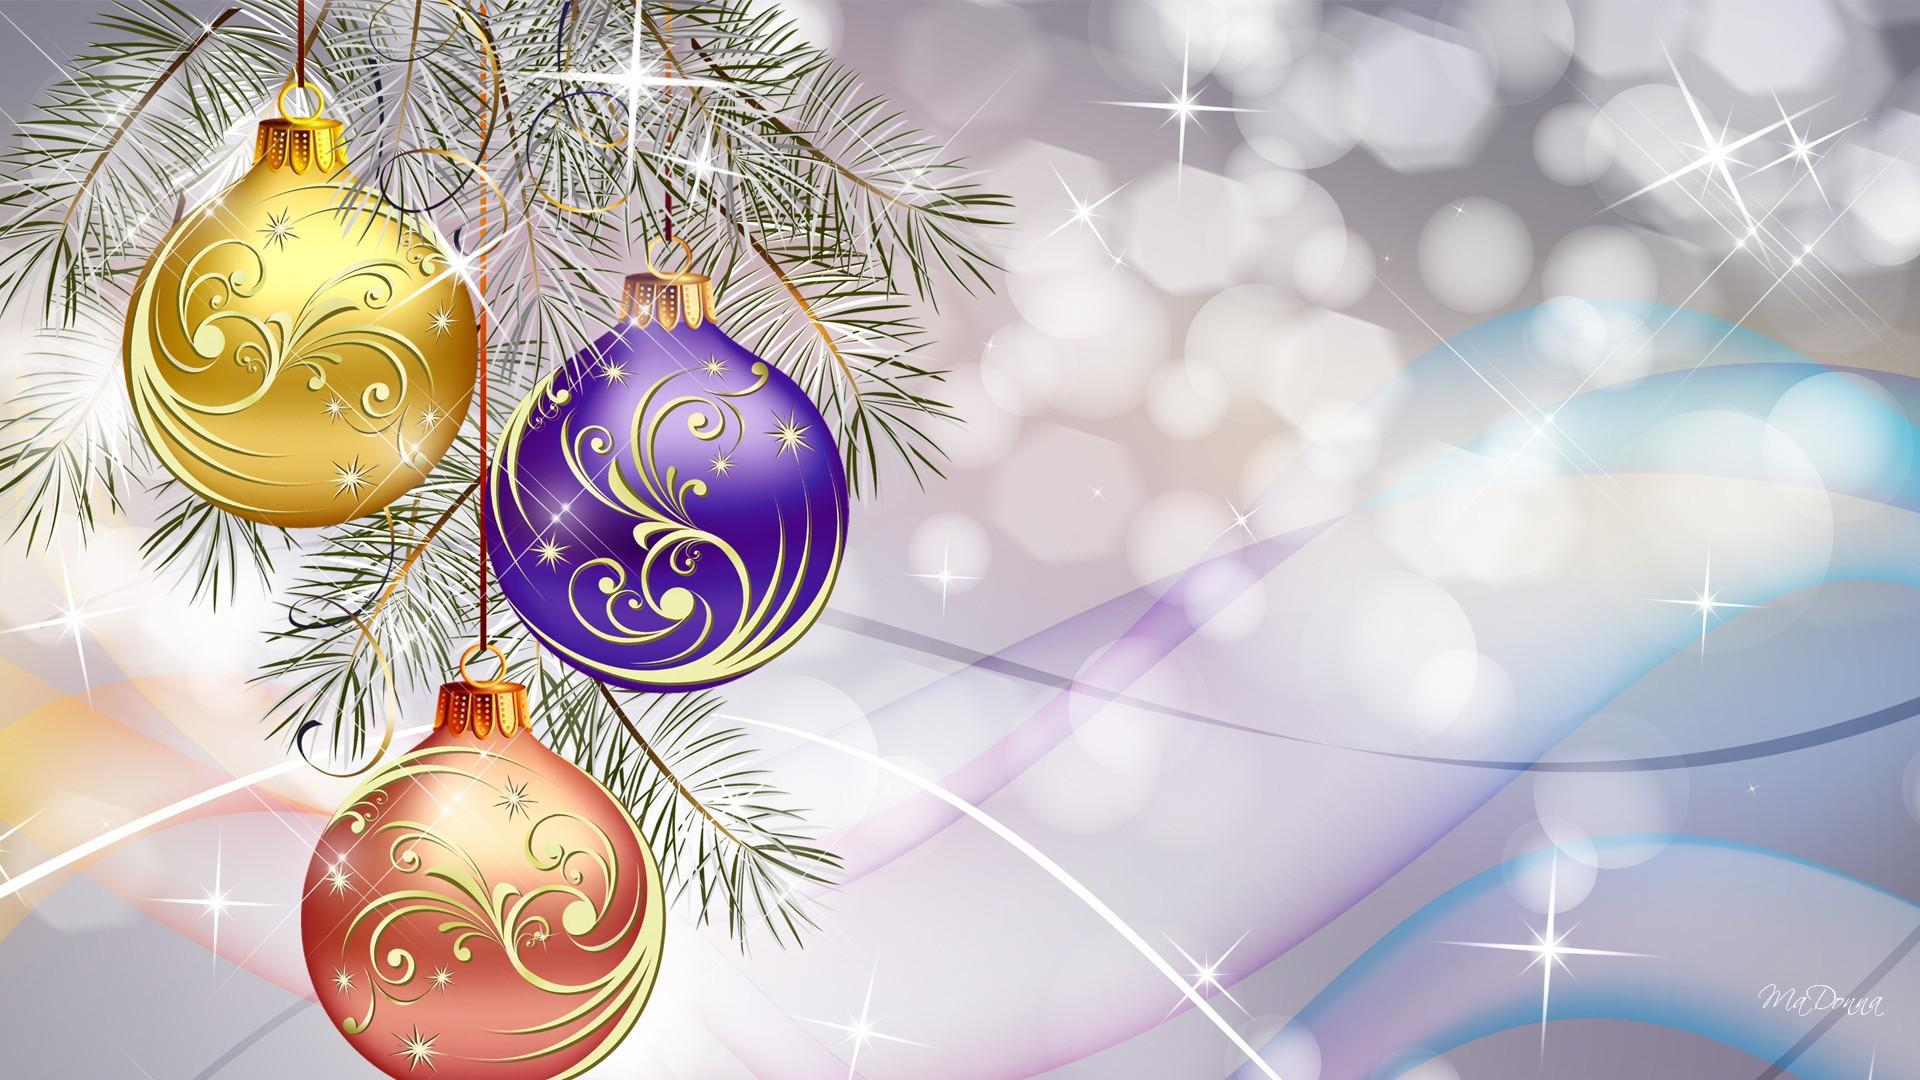 Multi colored backgrounds wallpapersafari - Free christmas images for desktop wallpaper ...